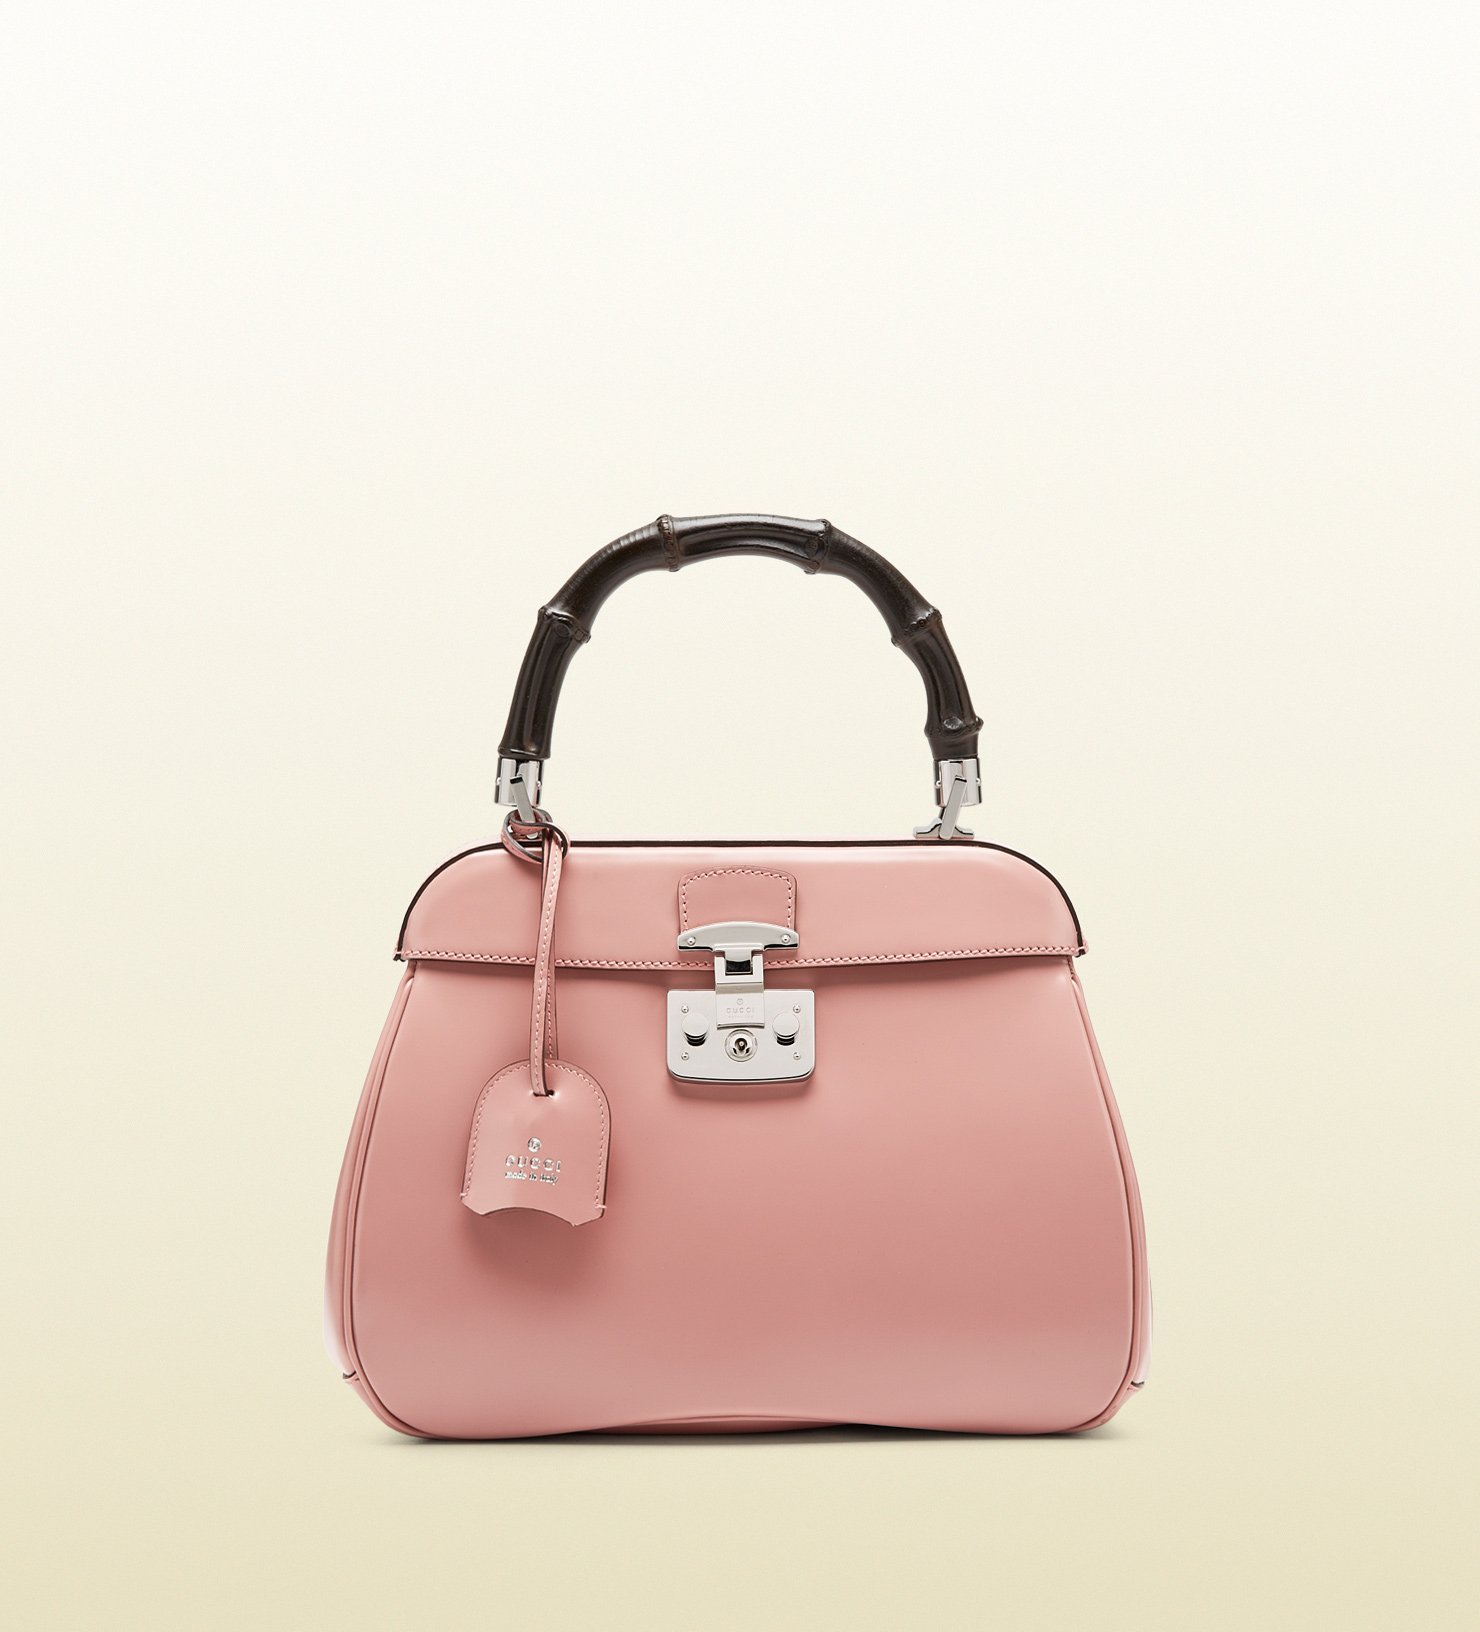 bbf1d67f110 Gucci Lady Lock Leather Top Handle Bag in Pink - Lyst